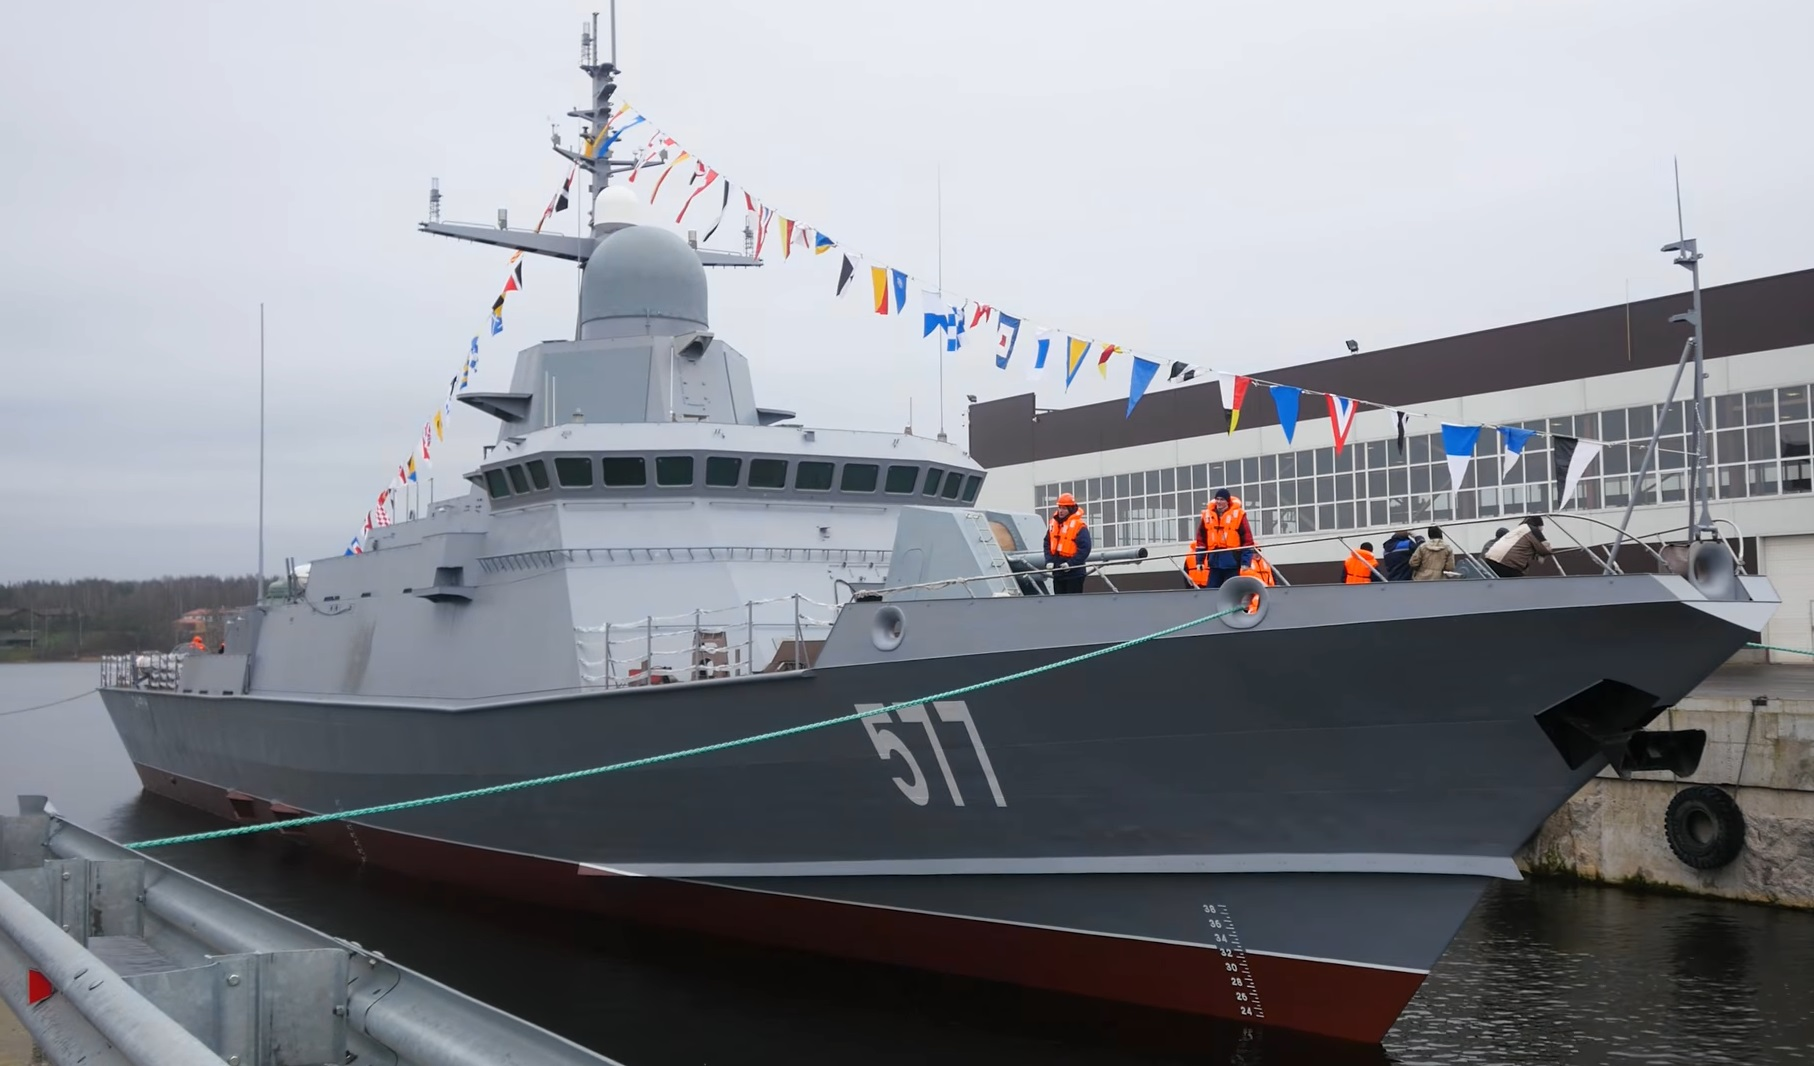 New Russian Karakurt-class missile corvette launched at Pella Leningrad Shipyard